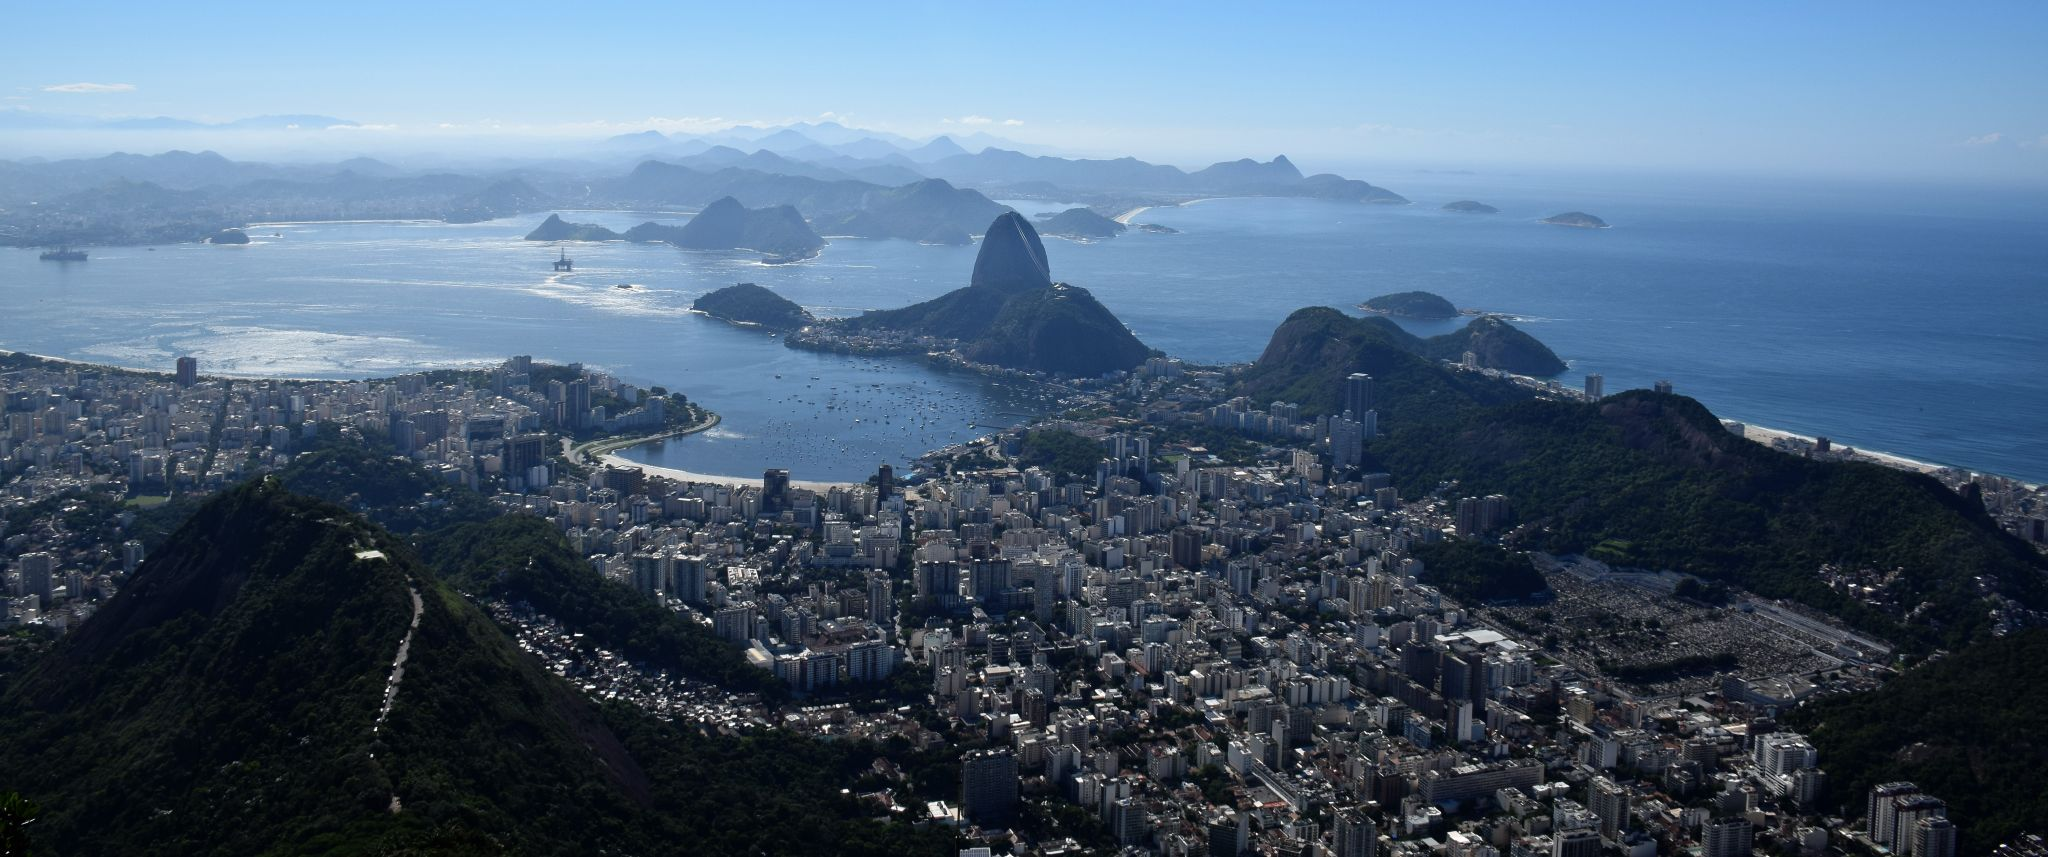 View of the City from Cristo Redentor, Brazil